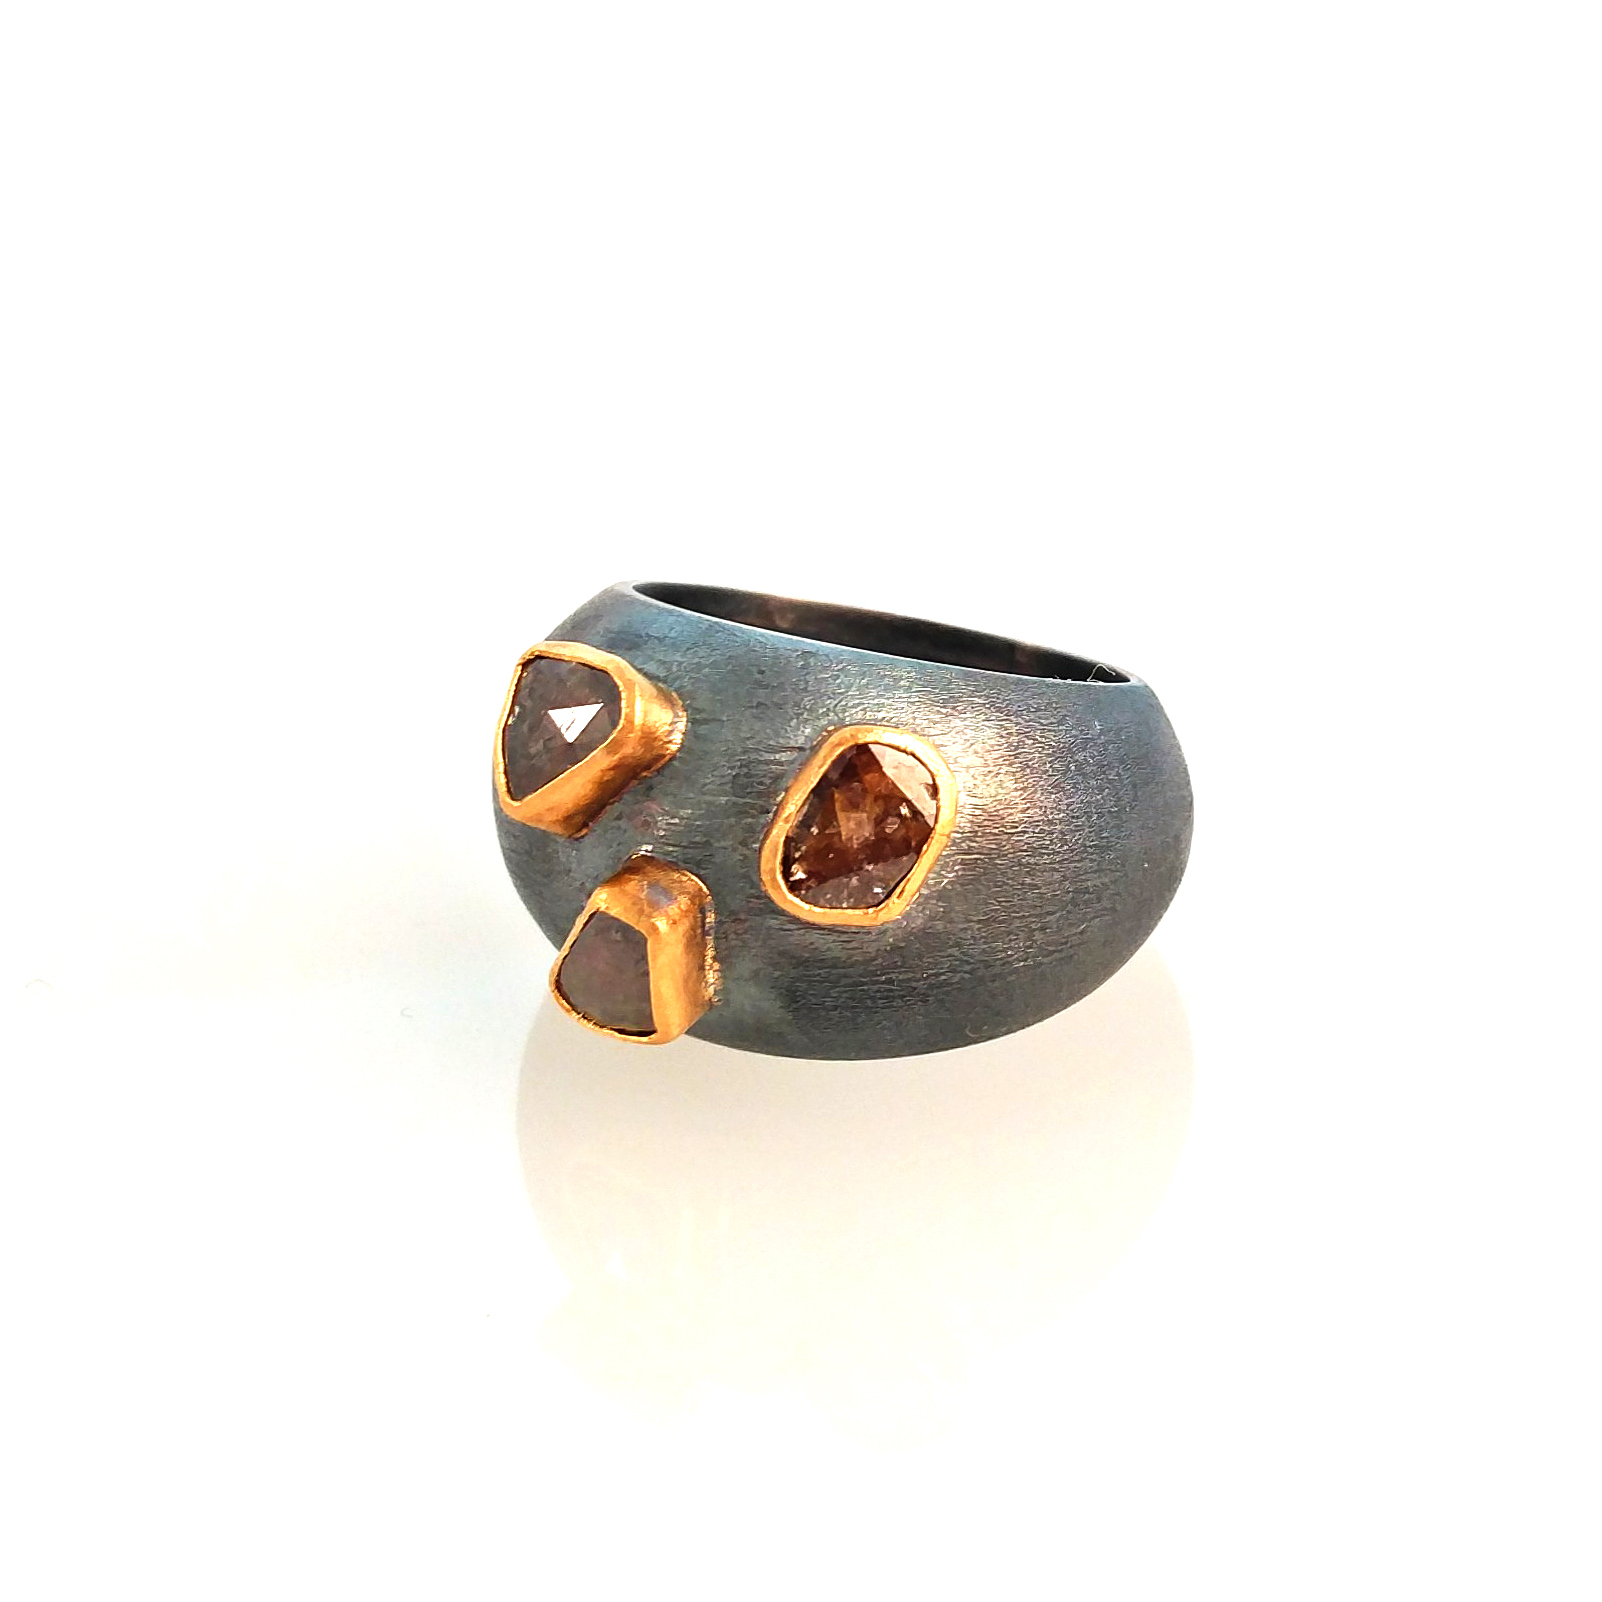 hand made 24k gold and silver ring with diamond